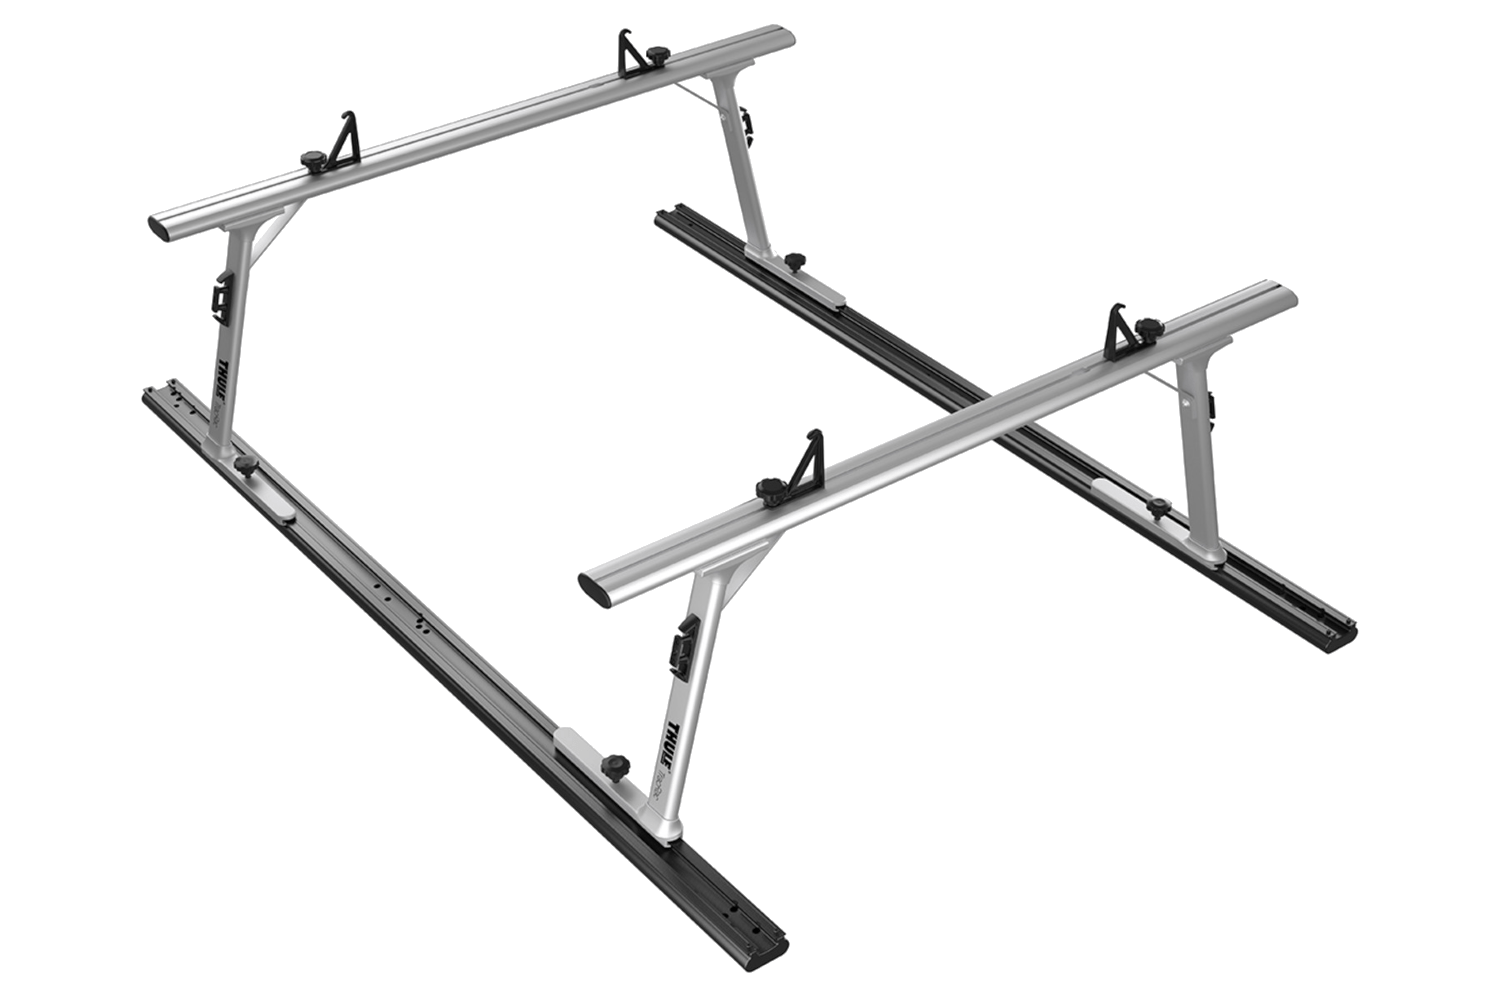 Thule TracRac adjustable truck rack side view.